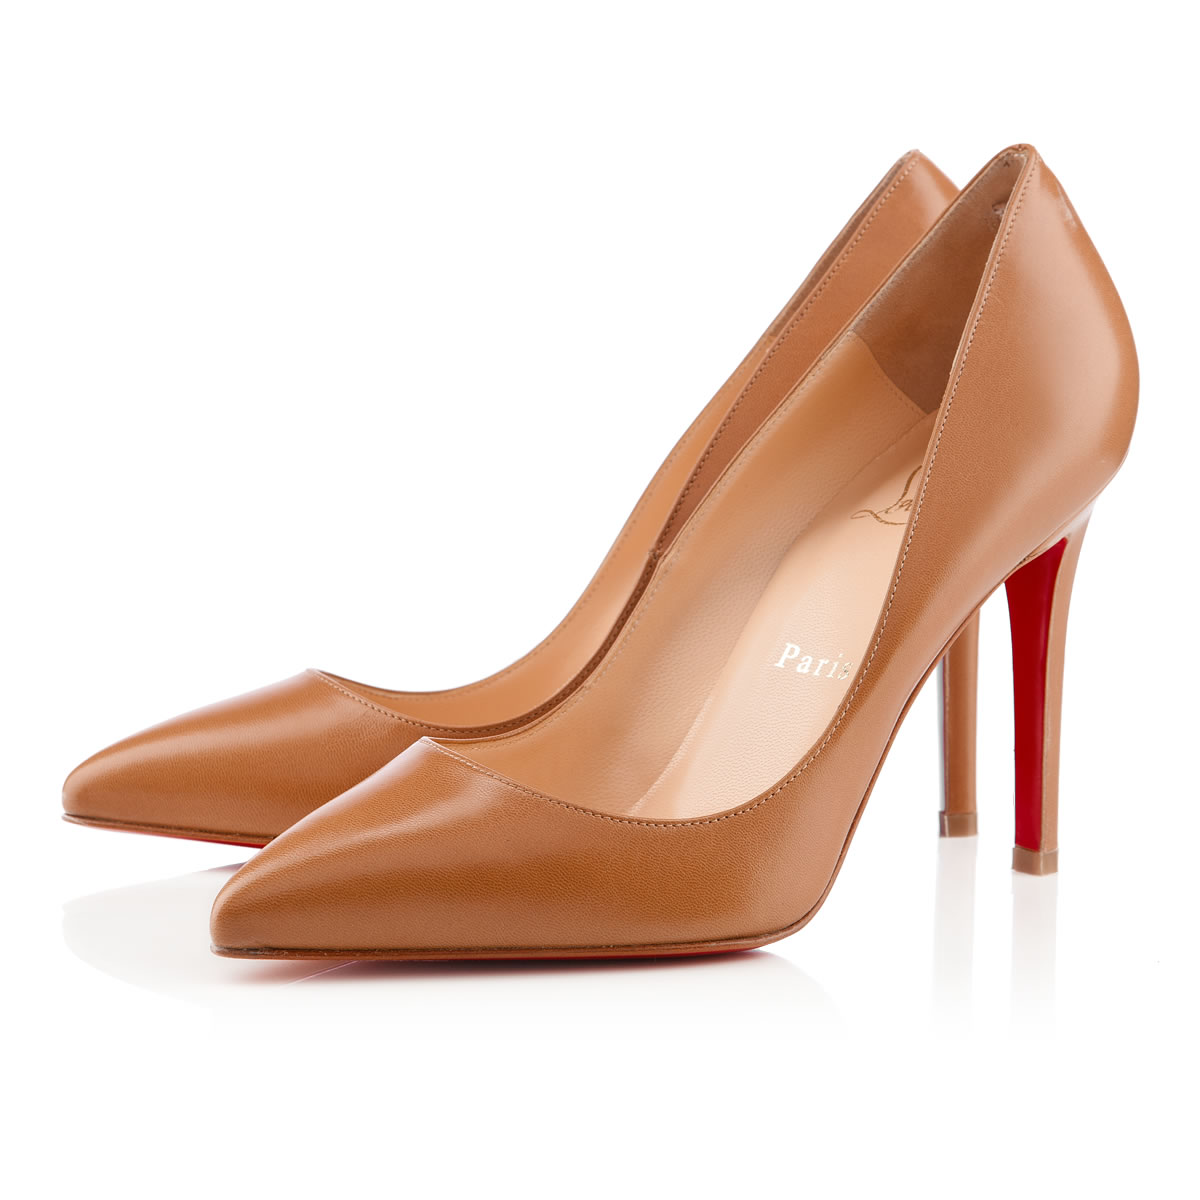 christianlouboutin-pigalle-3080519_3118_1_1200x1200 (1).jpg